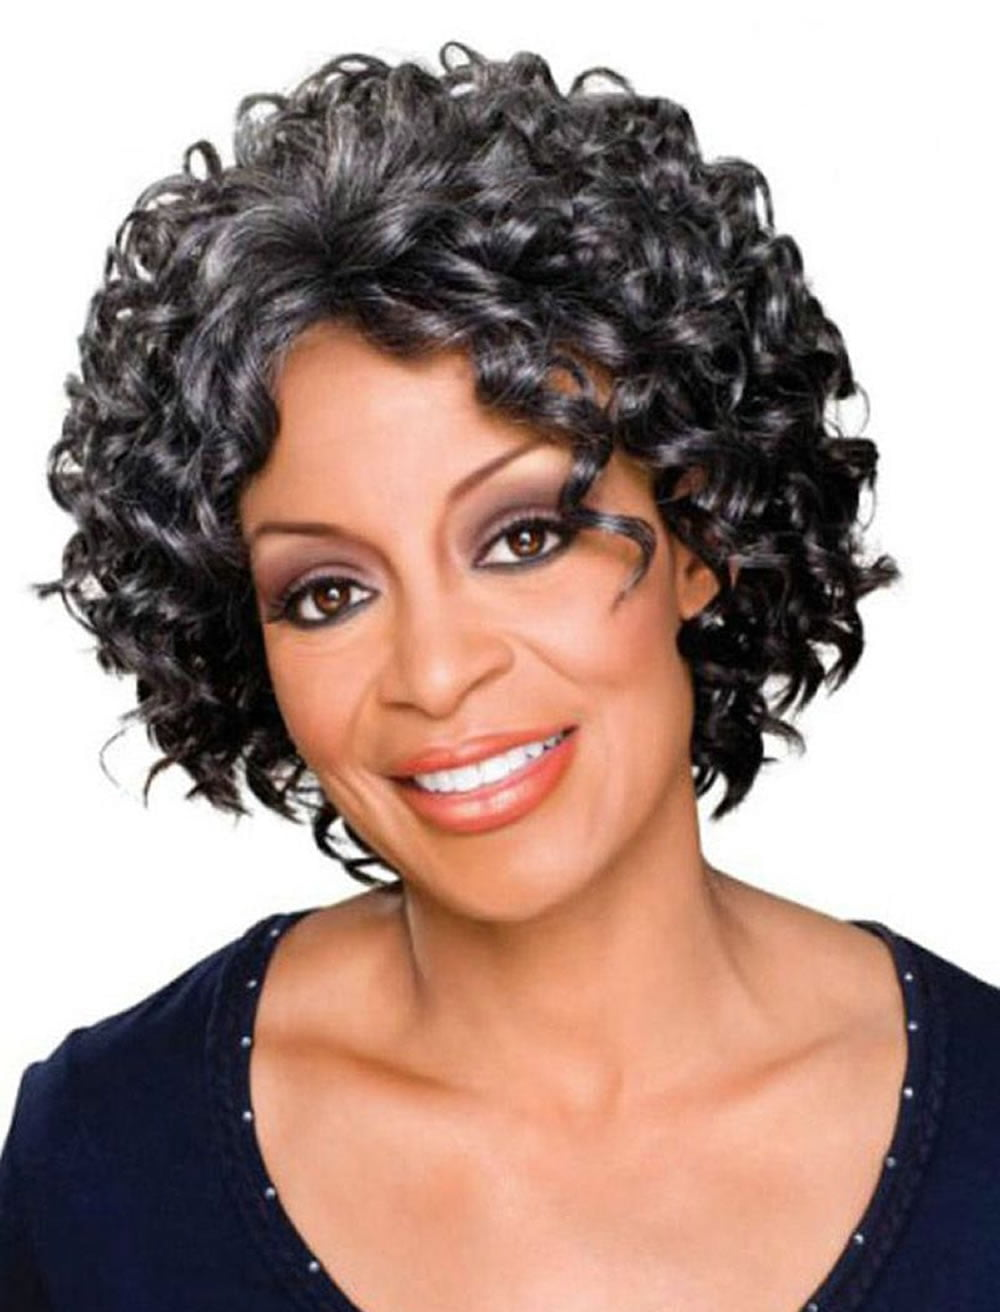 Curly Short Hairstyles for Older Women Over 50 - Best ...